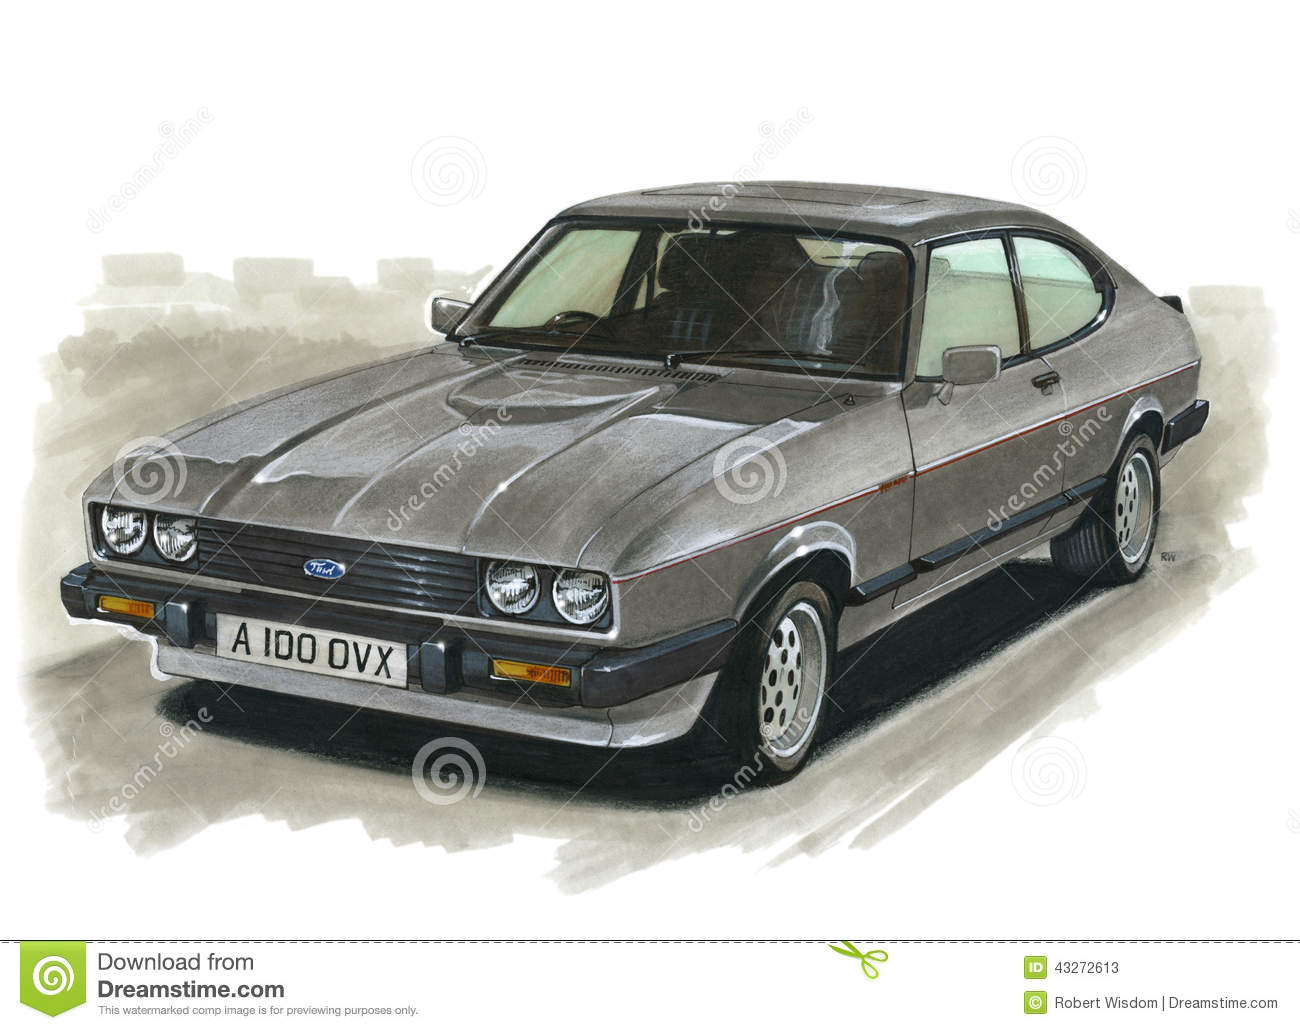 Cobra 11 Auto >> Ford Capri MkIII 2.8 Injection Editorial Stock Photo - Illustration of artist, automotive: 43272613